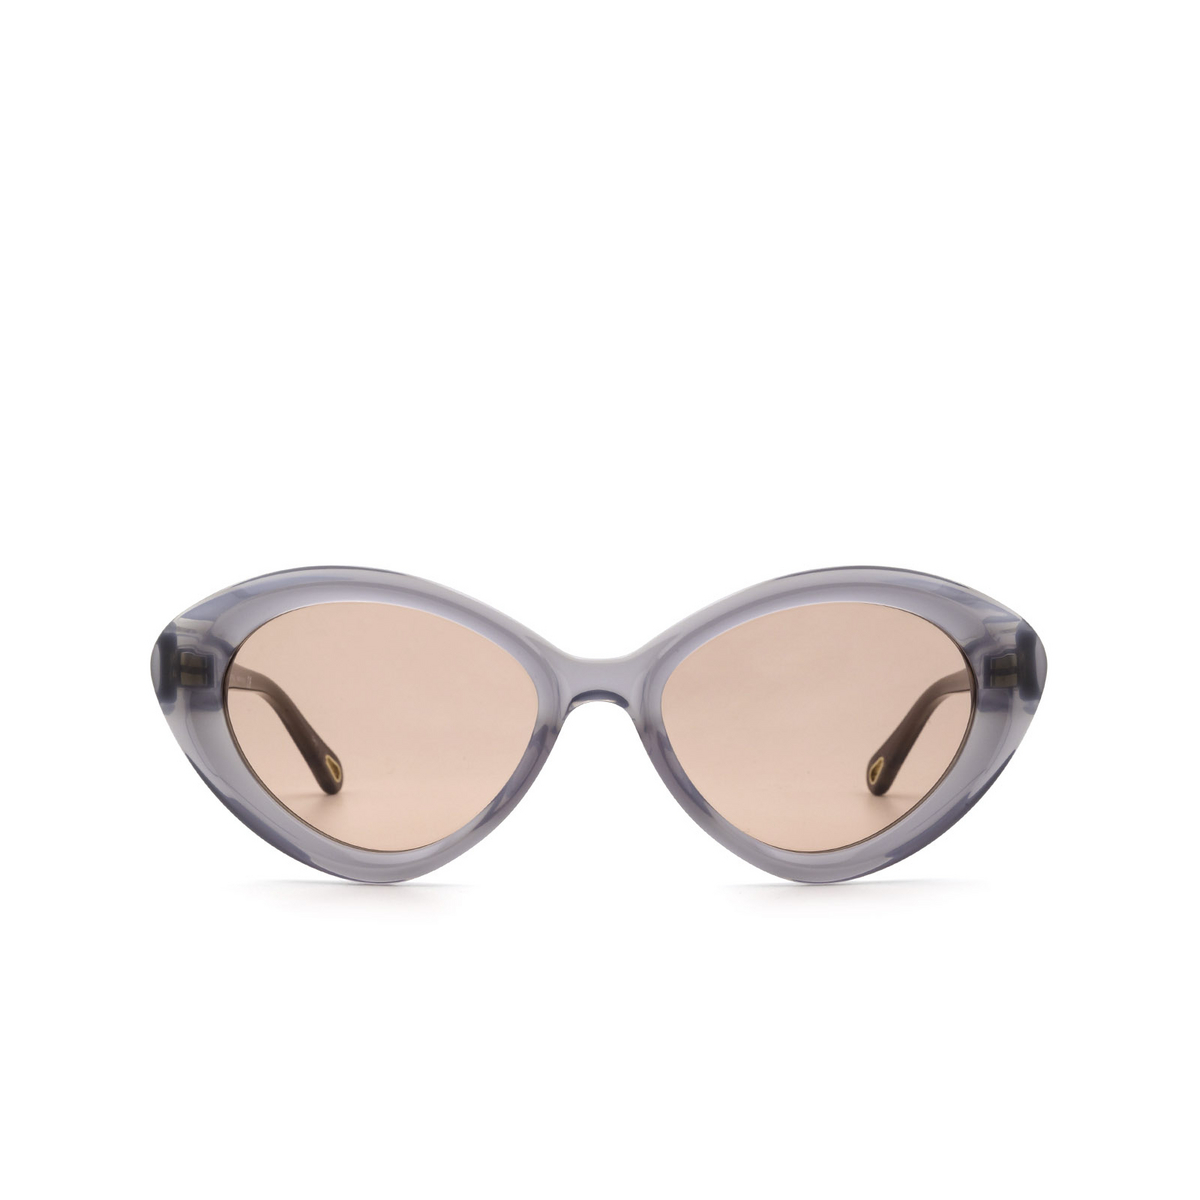 Chloé® Cat-eye Sunglasses: CH0050S color Grey 001 - front view.